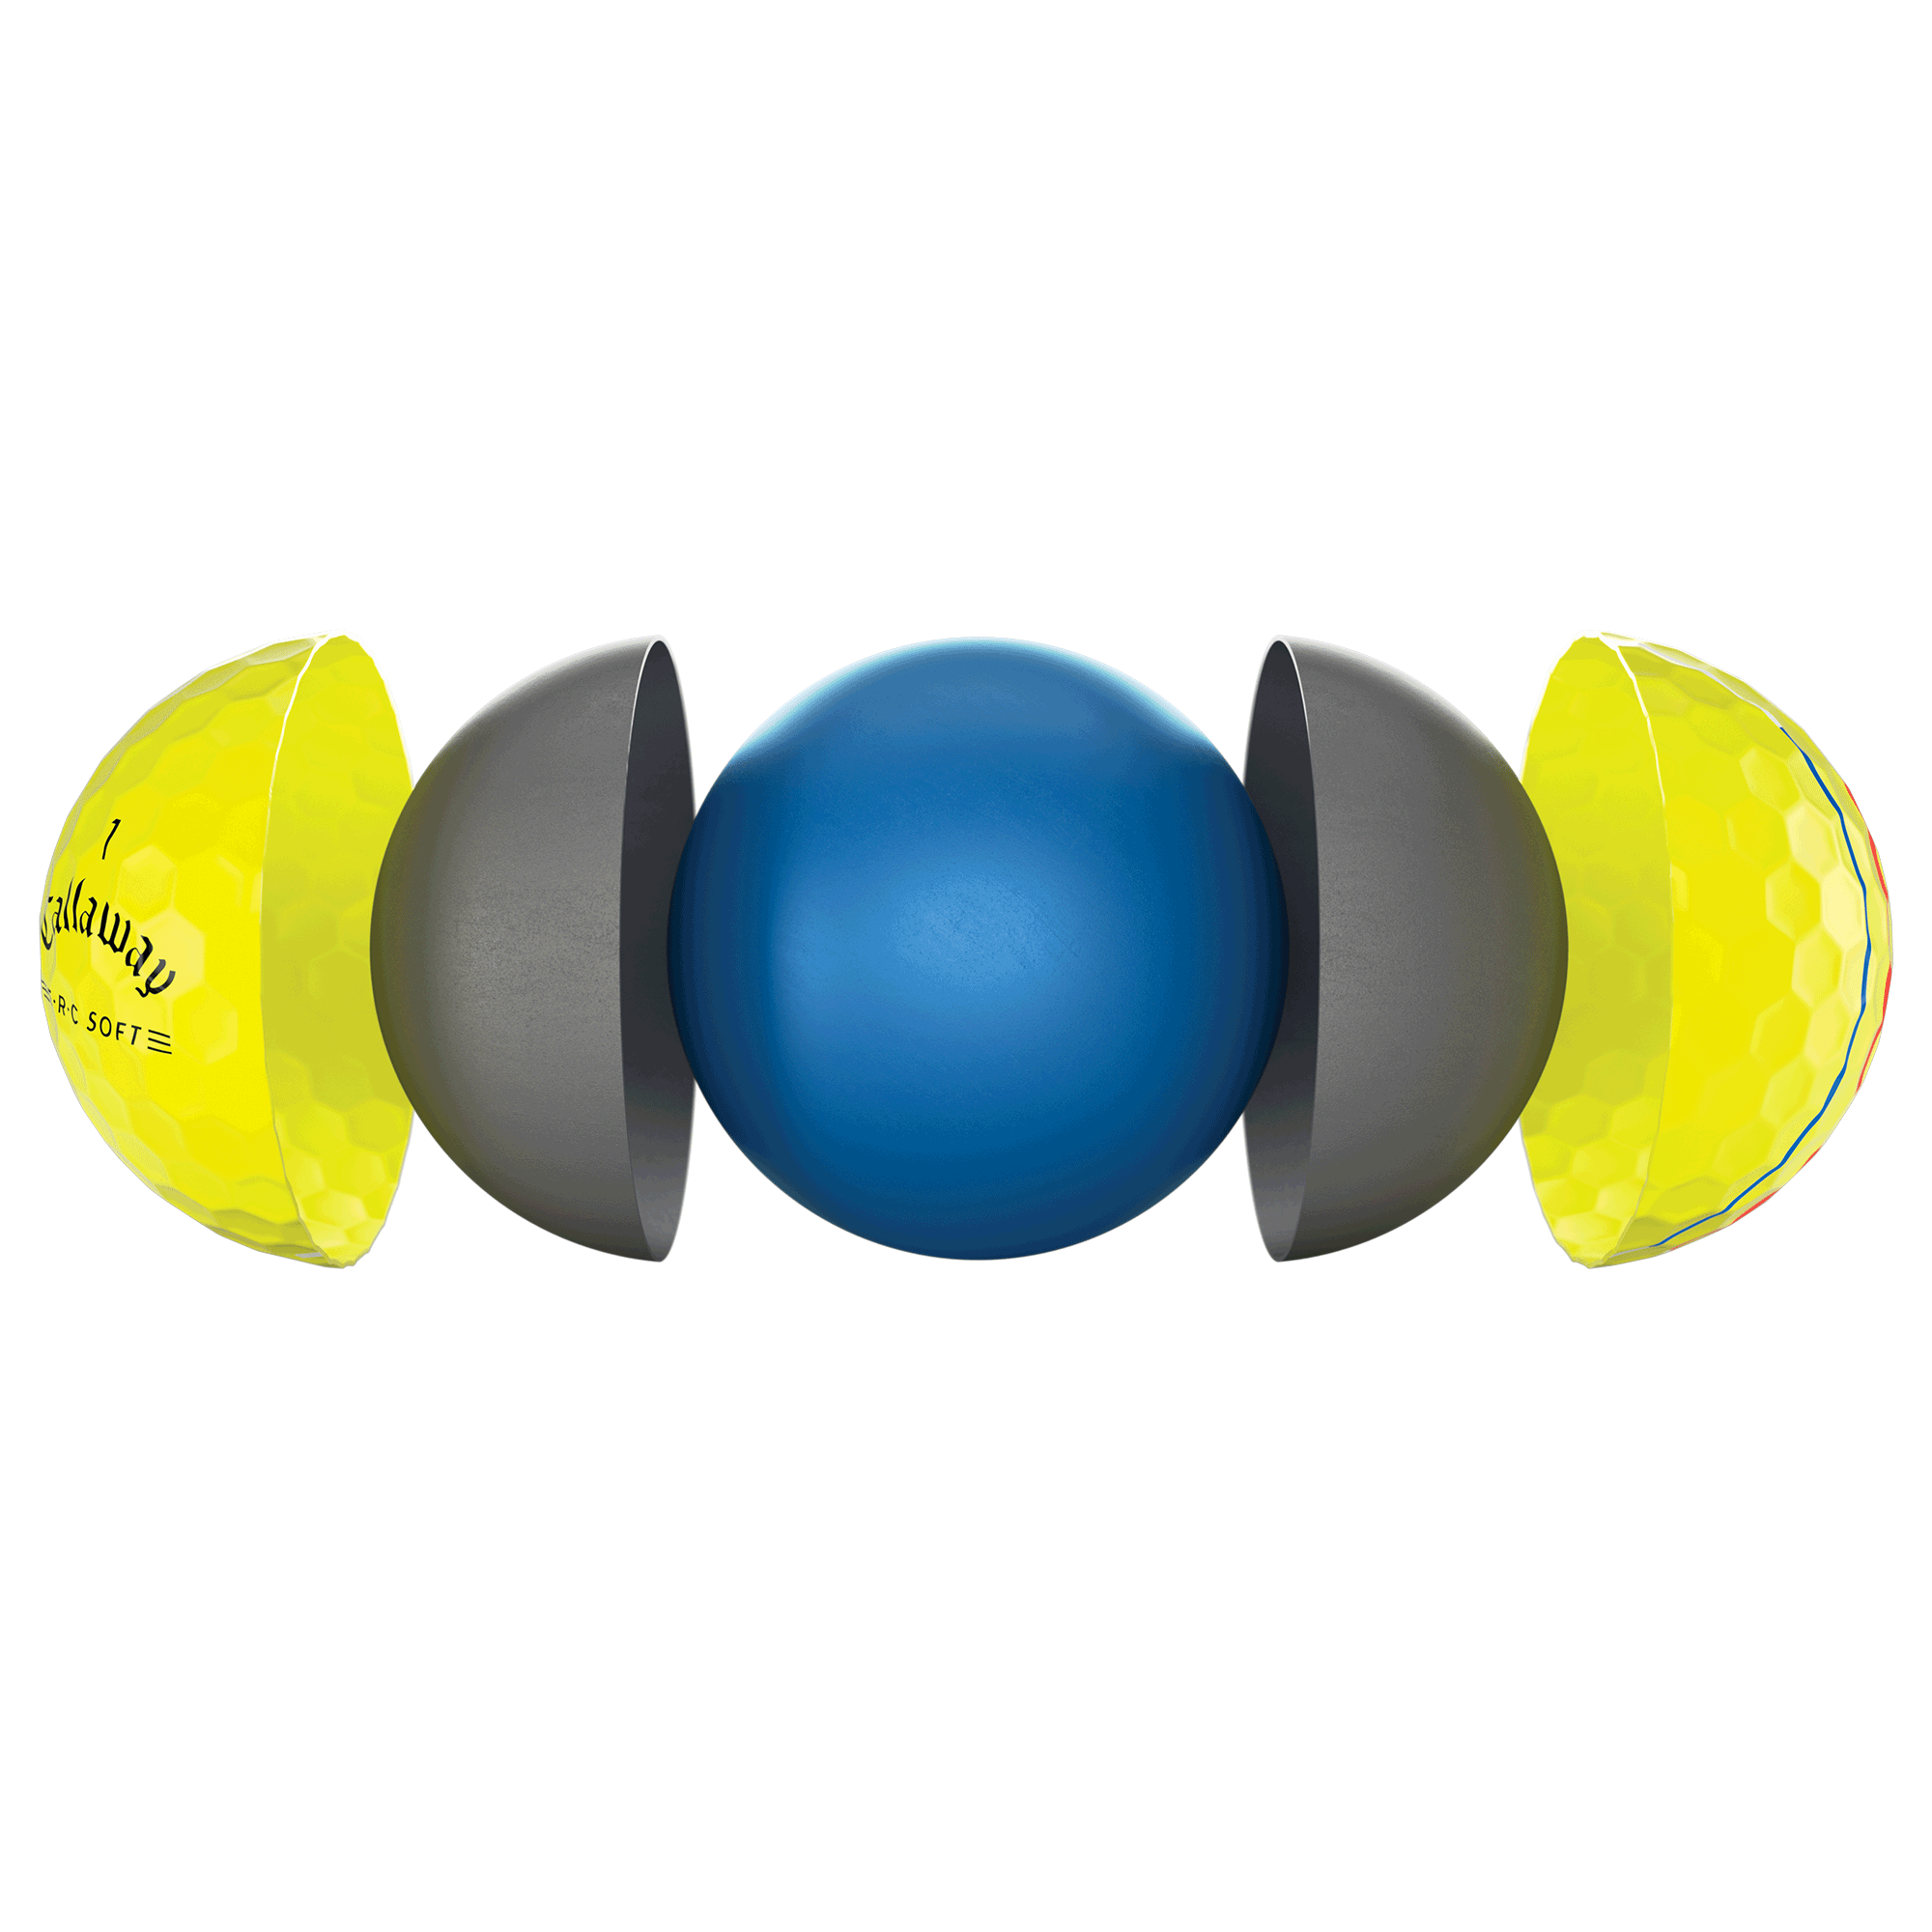 E•R•C Soft Triple Track Yellow golf ball technology breakout image